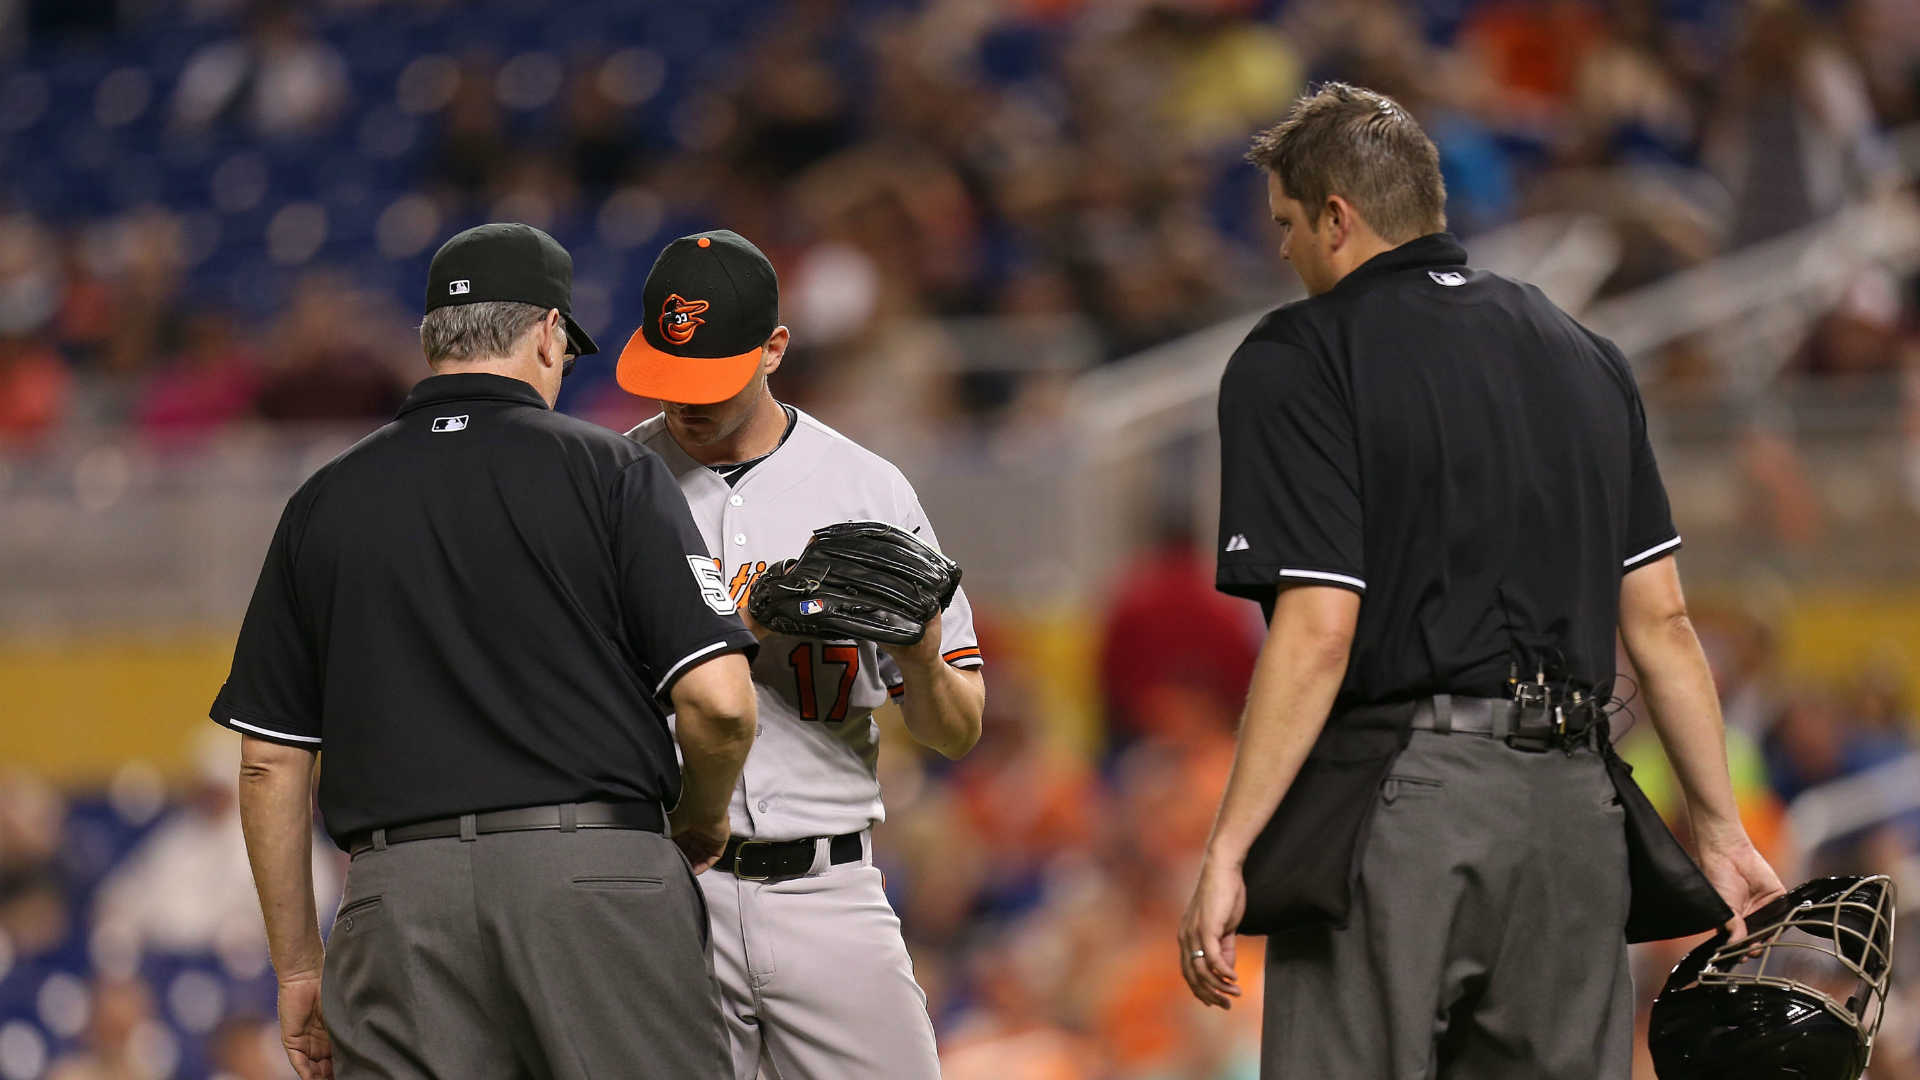 Orioles' Brian Matusz suspended for doctoring baseball